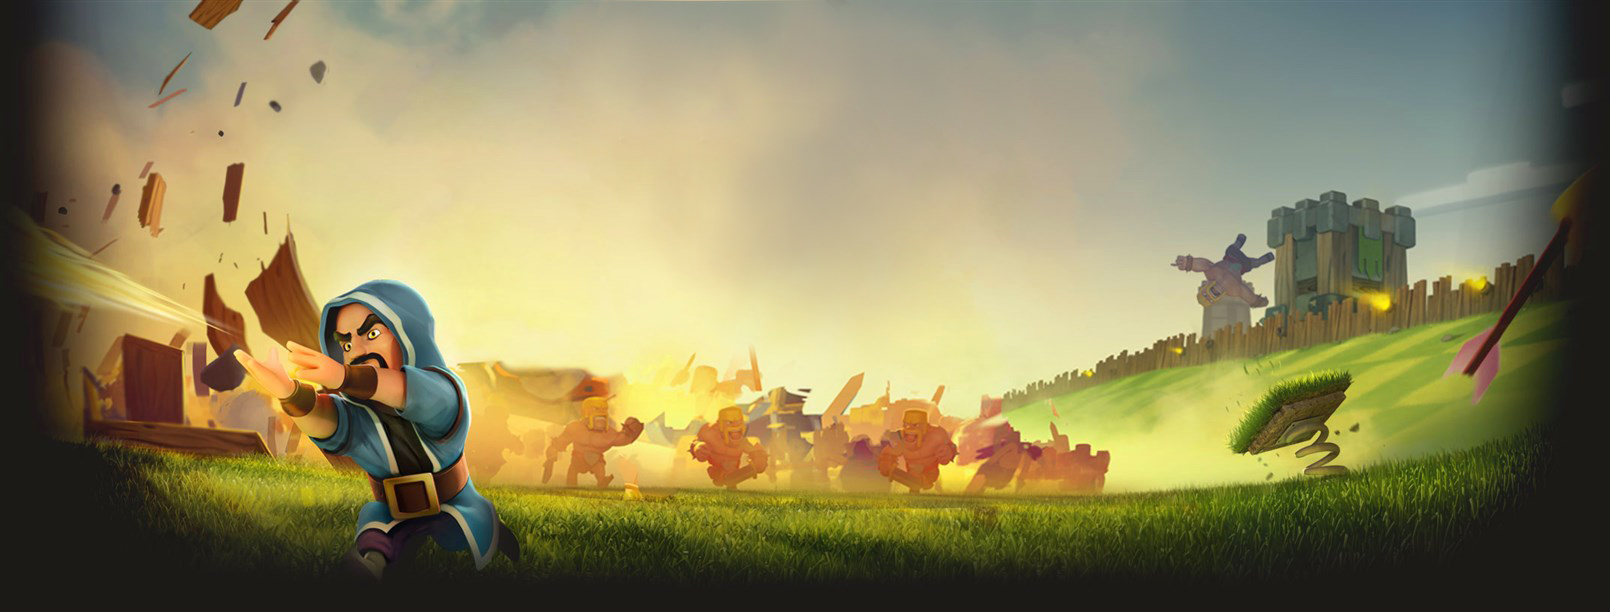 Clash Of Clans Wallpapers Images Photos Pictures Backgrounds: wallsdesk.com/games/clash-of-clans